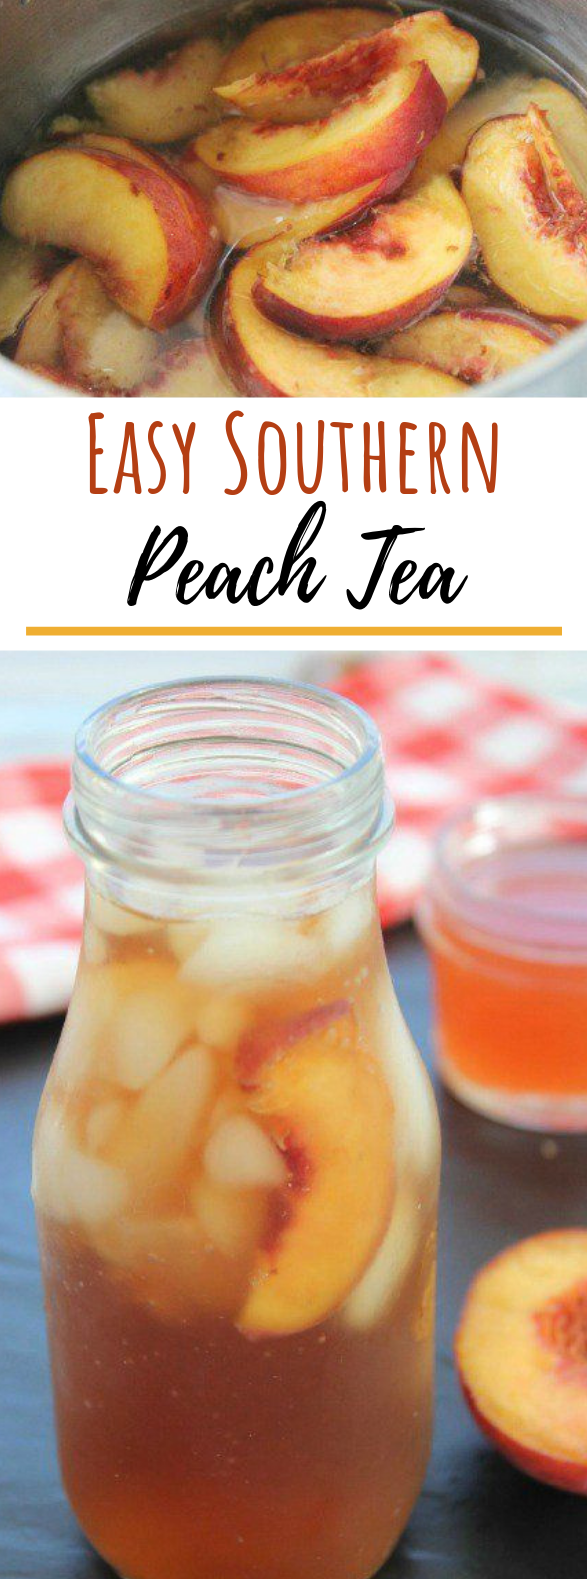 Easy Southern Peach Tea #drinks #cocktails